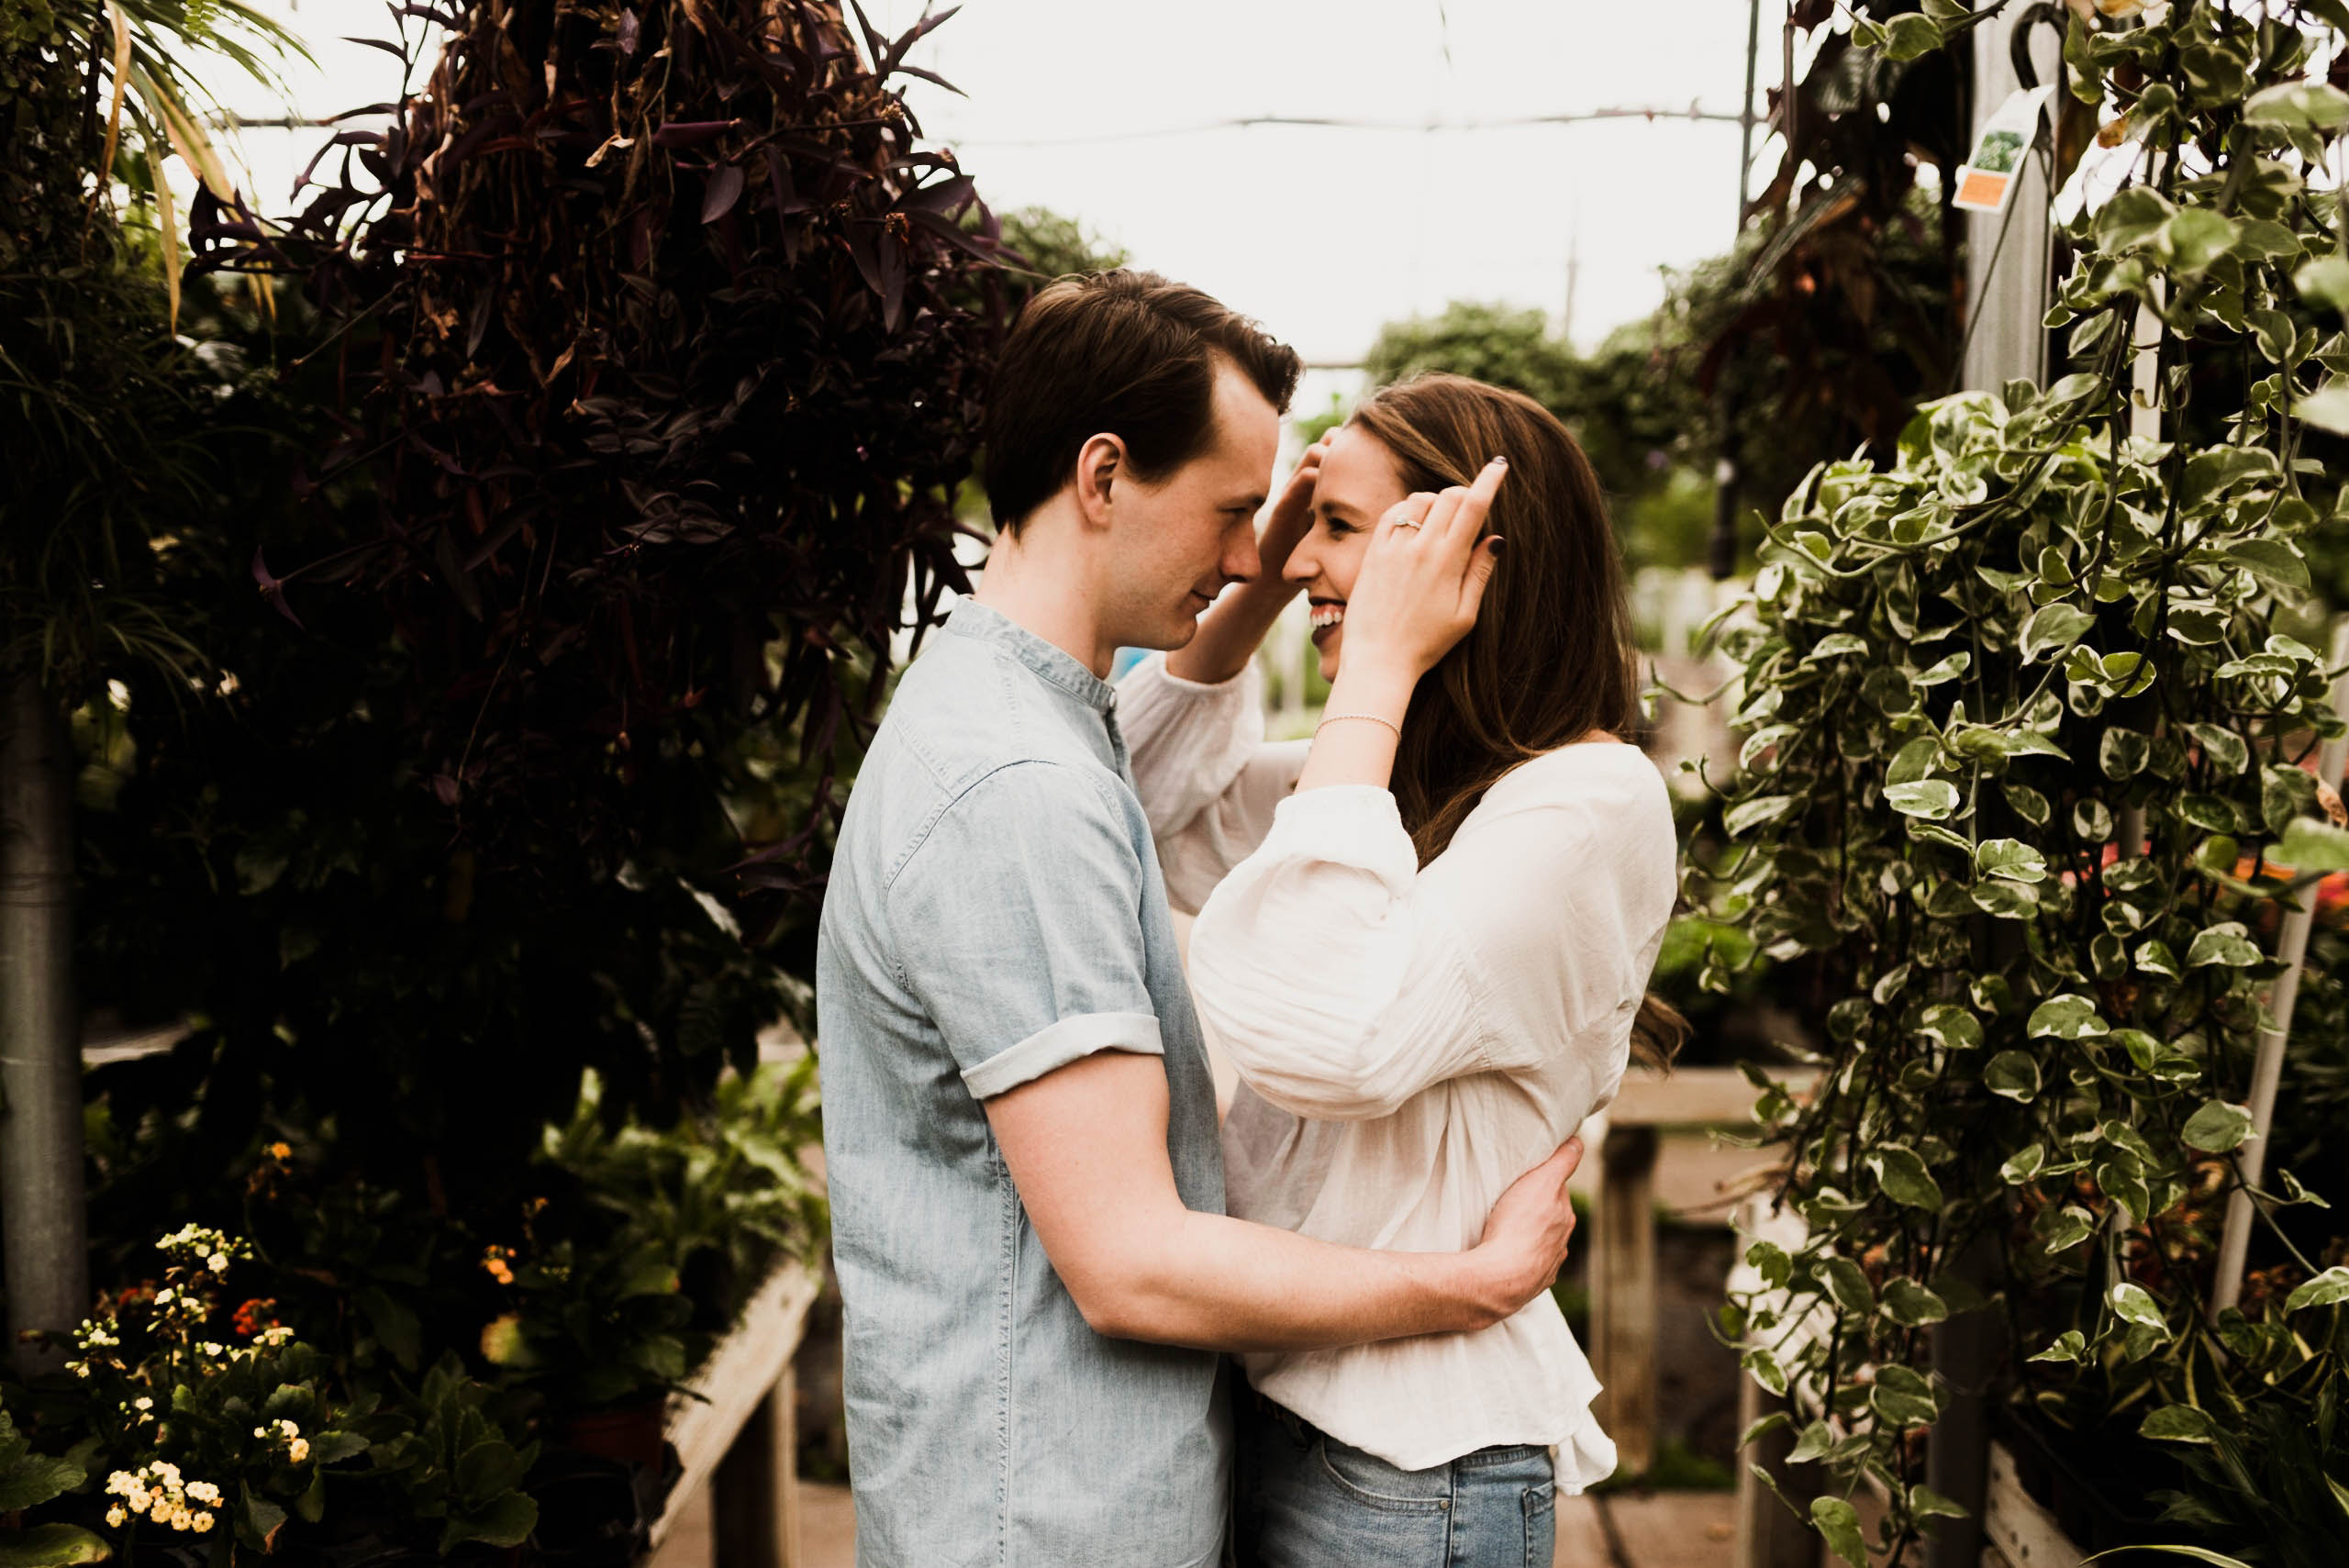 couple photography tips